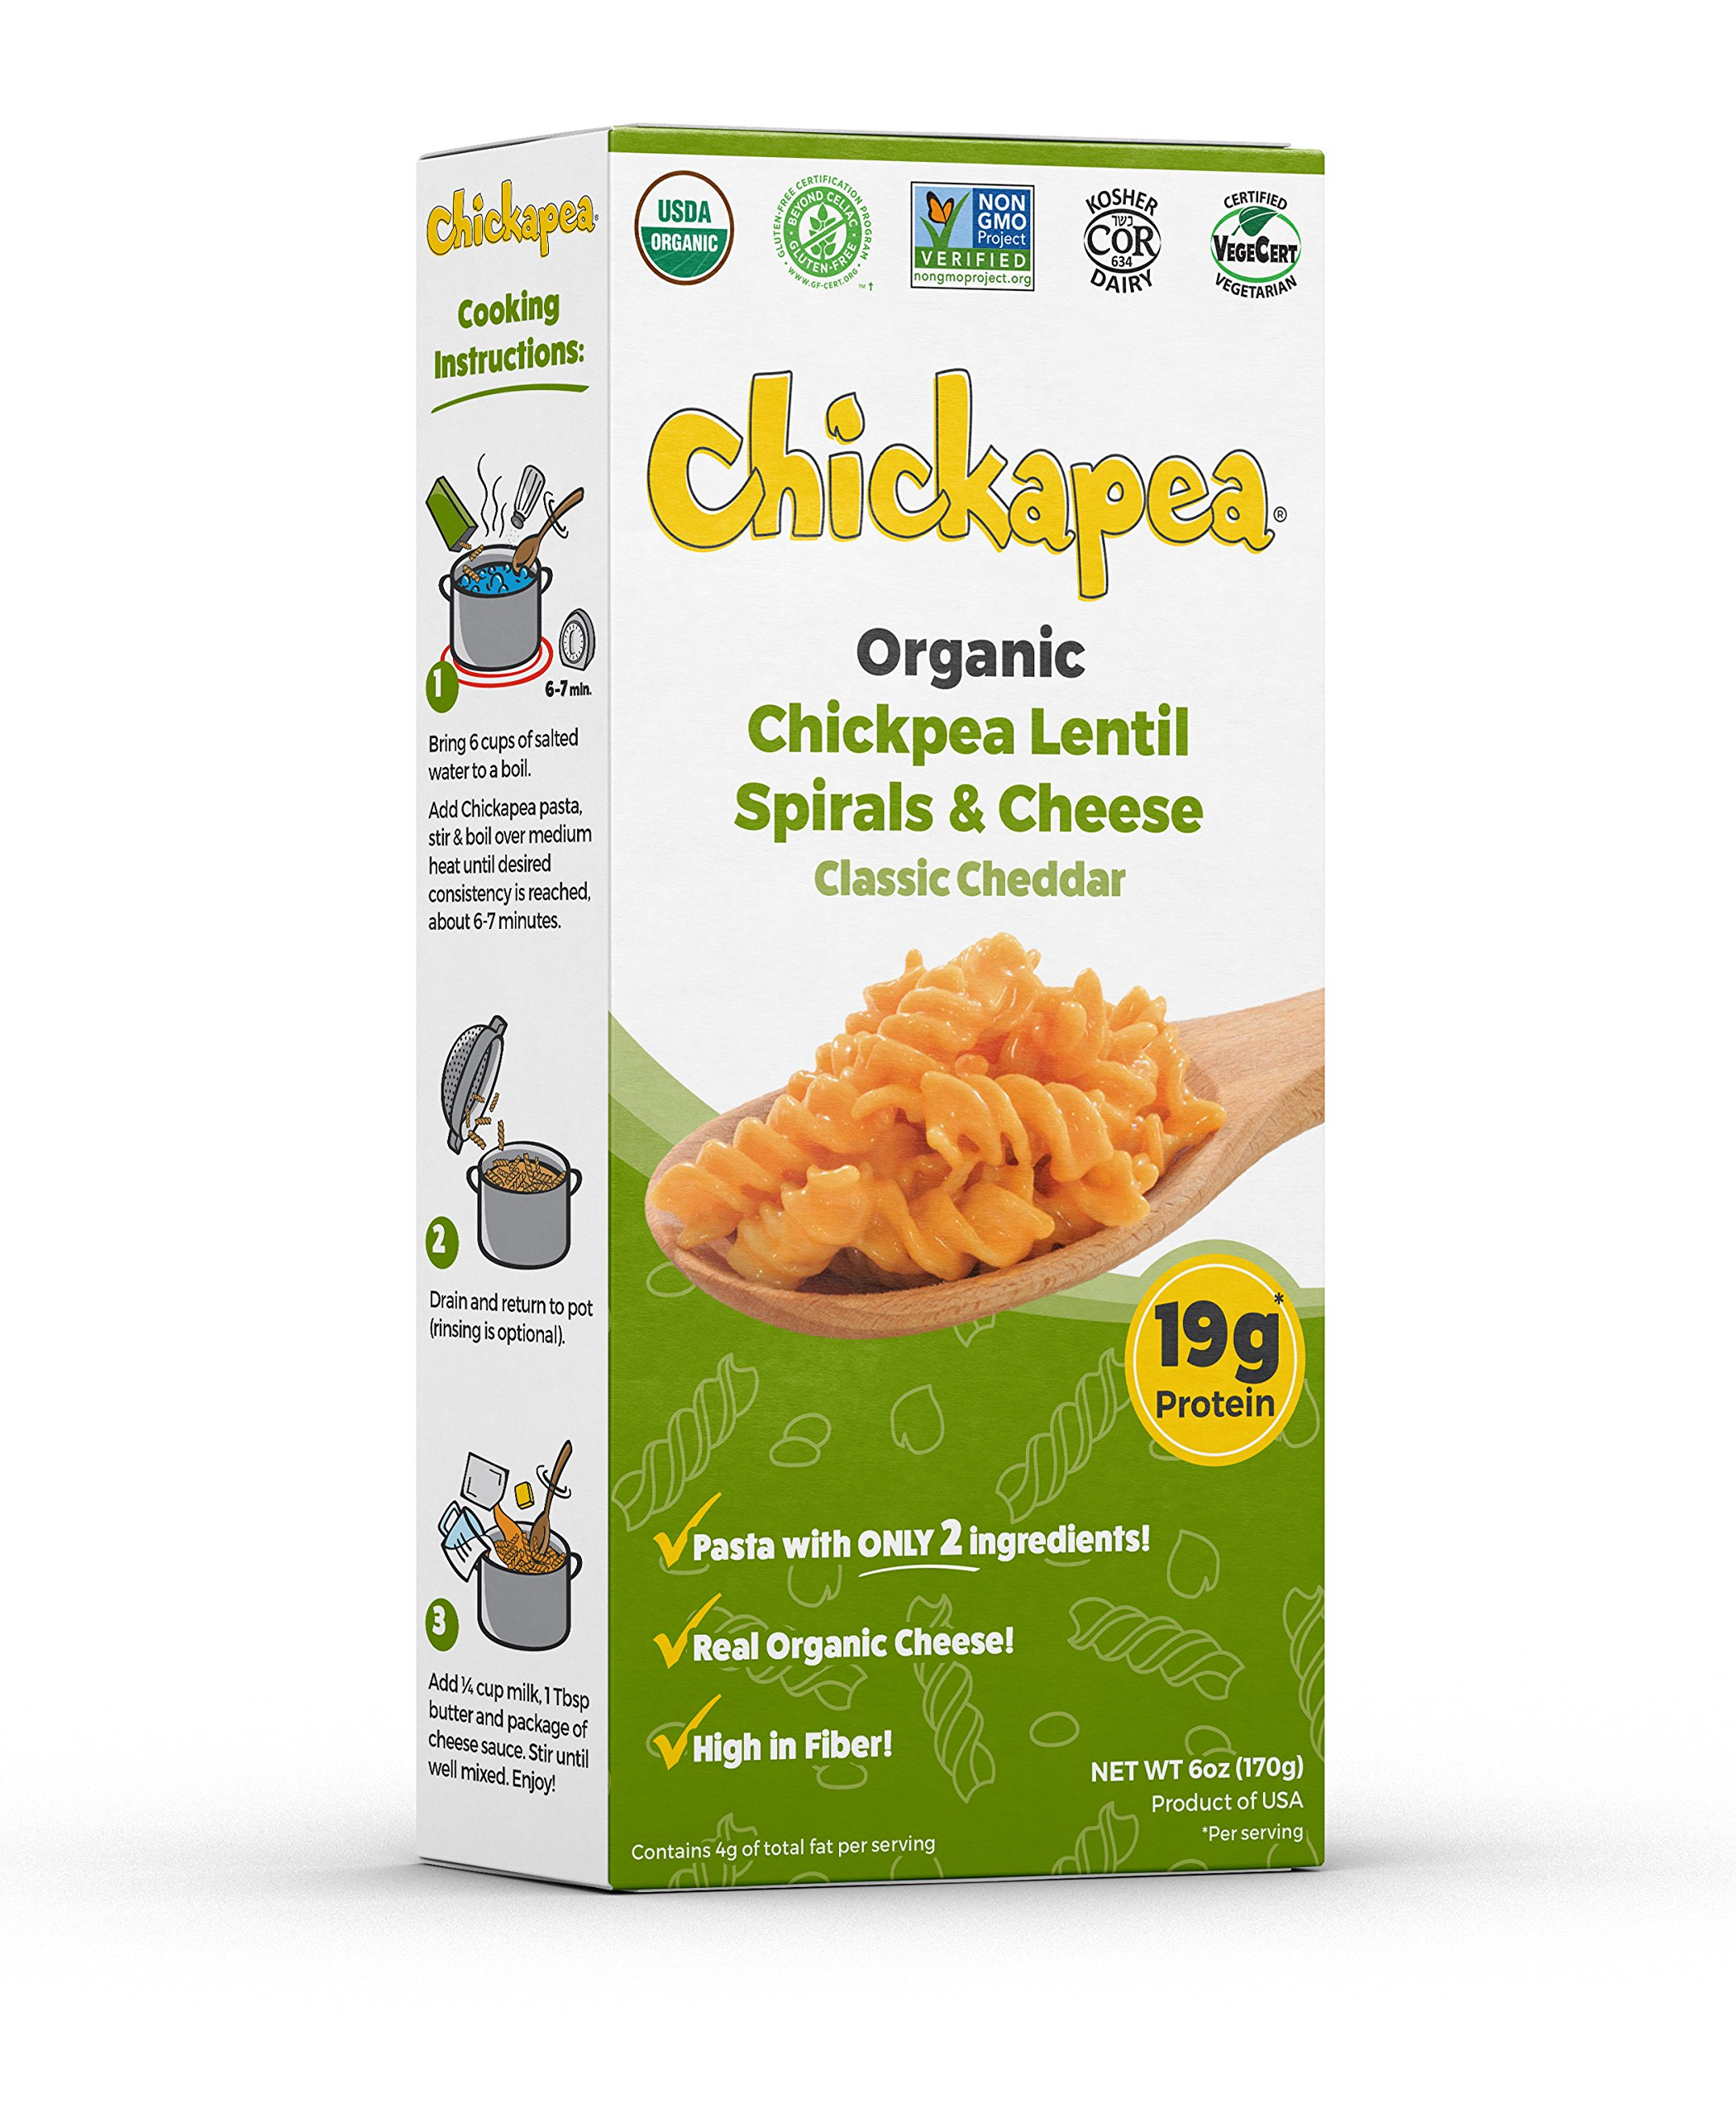 Chickapea Organic Chickpea and Red Lentil Spirals and Cheddar - Gluten-Free Macaroni and Cheese Rotini Pasta - 6 oz Each (Pack of 6)